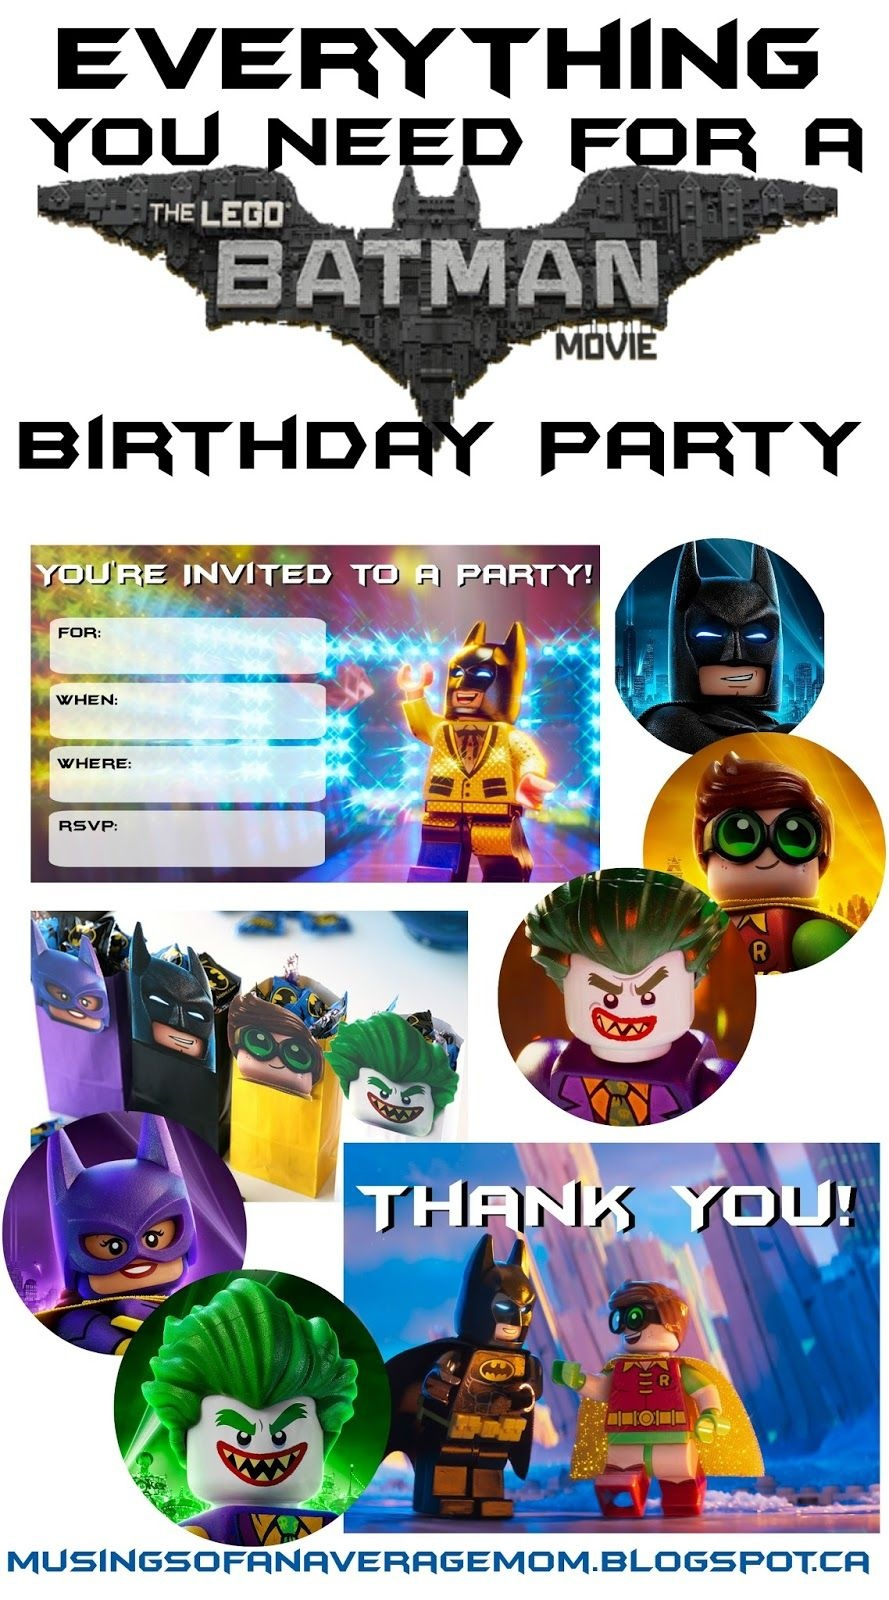 Lego Batman Thank You Cards | Lego Batman 5Th Bday | Lego Batman - Lego Batman Party Invitations Free Printable